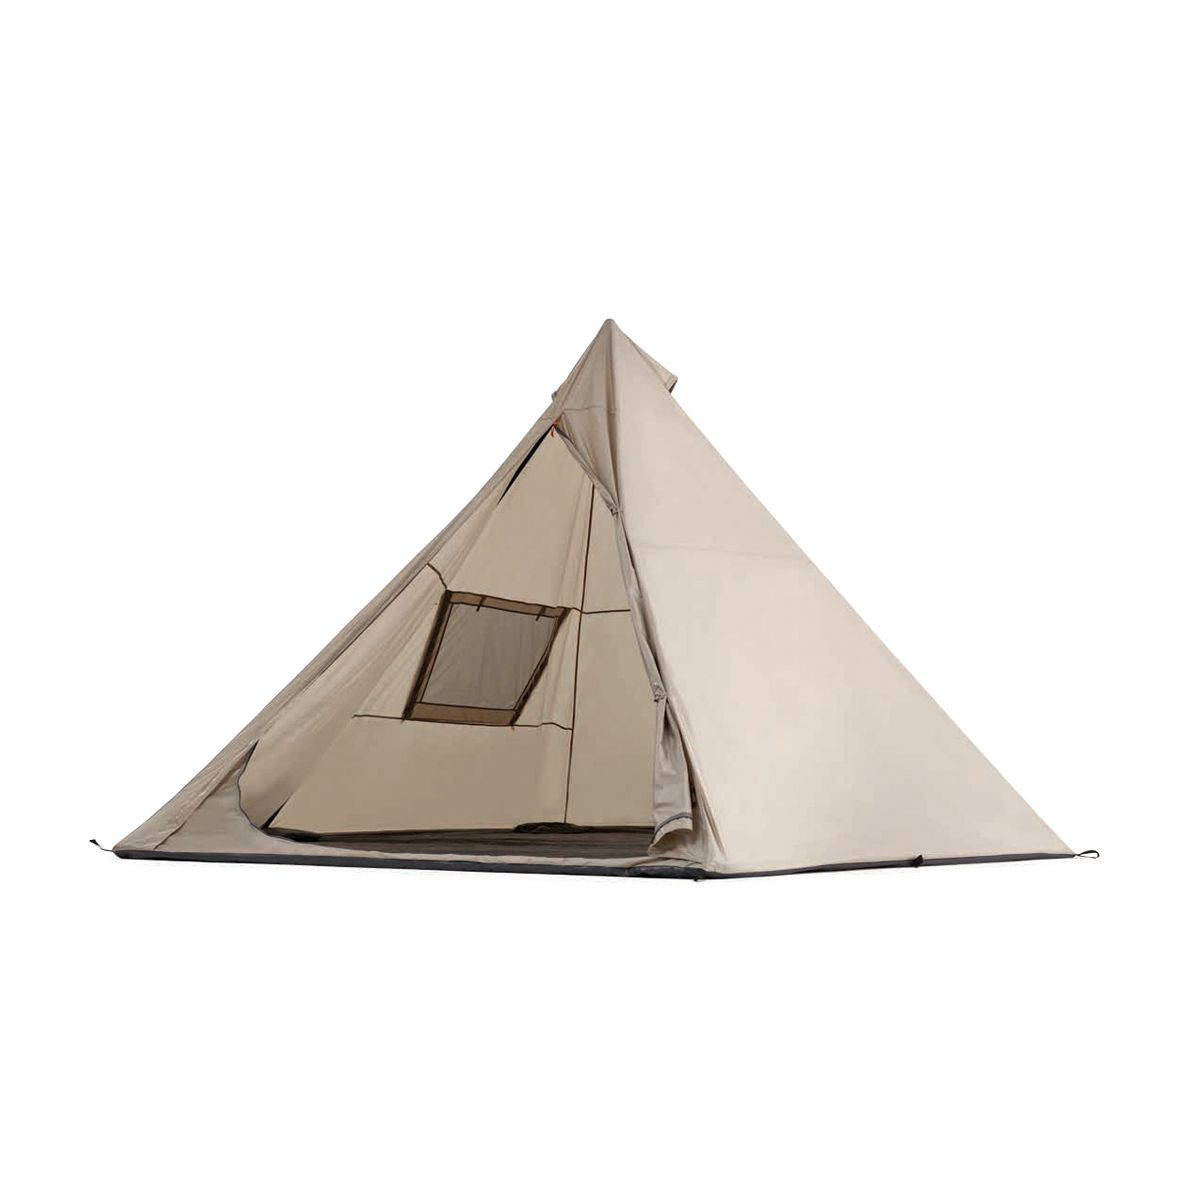 4 Person Gl&ing Tent | Kmart  sc 1 st  Pinterest & 4 Person Glamping Tent | Kmart | Camping | Pinterest | Glamping ...